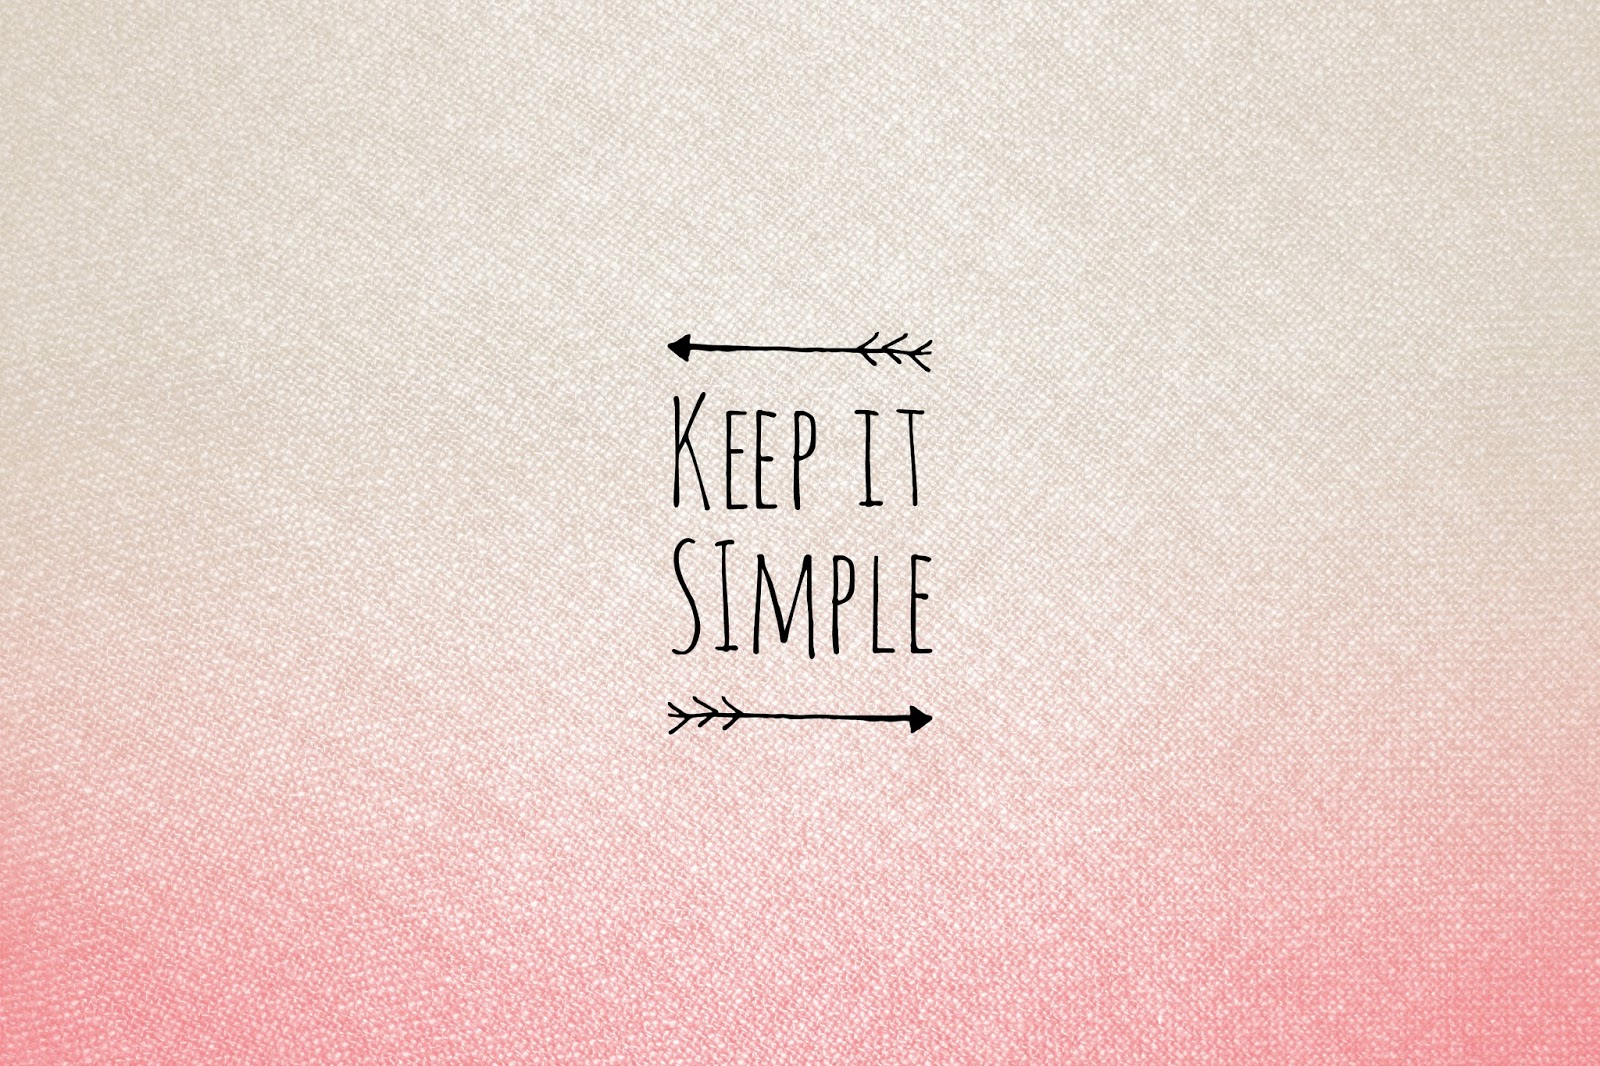 Hd Live Wallpapers For Iphone 7 Free Quot Keep It Simple Quot Wallpaper Curly Made